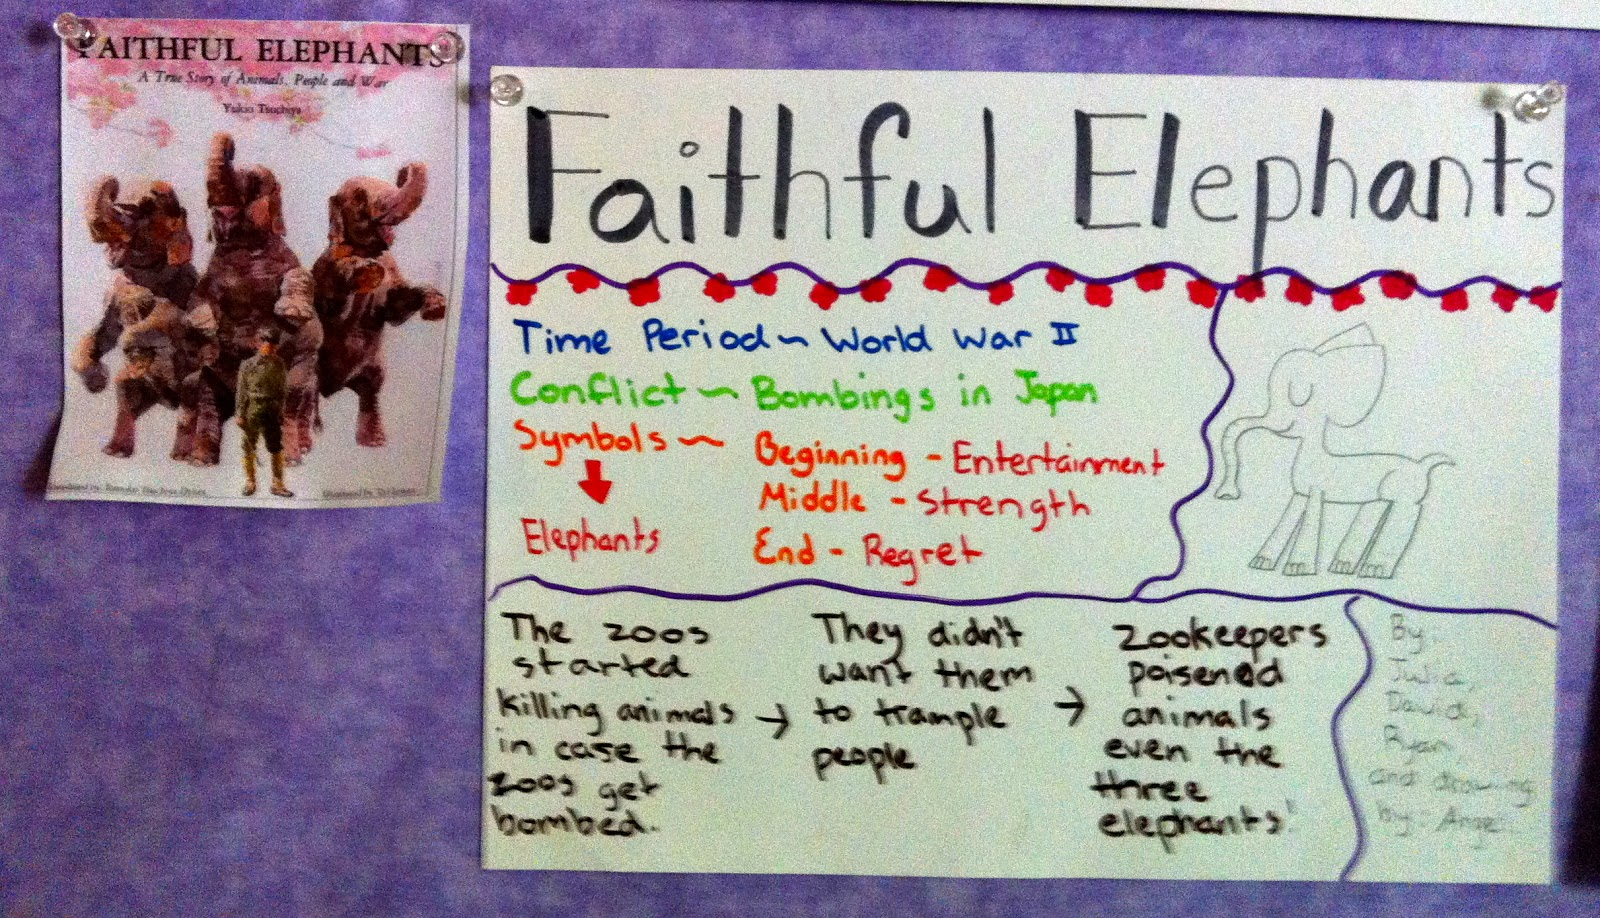 faithful elephants book review essay Have students read faithful elephants then ask them to write a book review book reviews are great ways to engage students' critical thinking about what they just read.